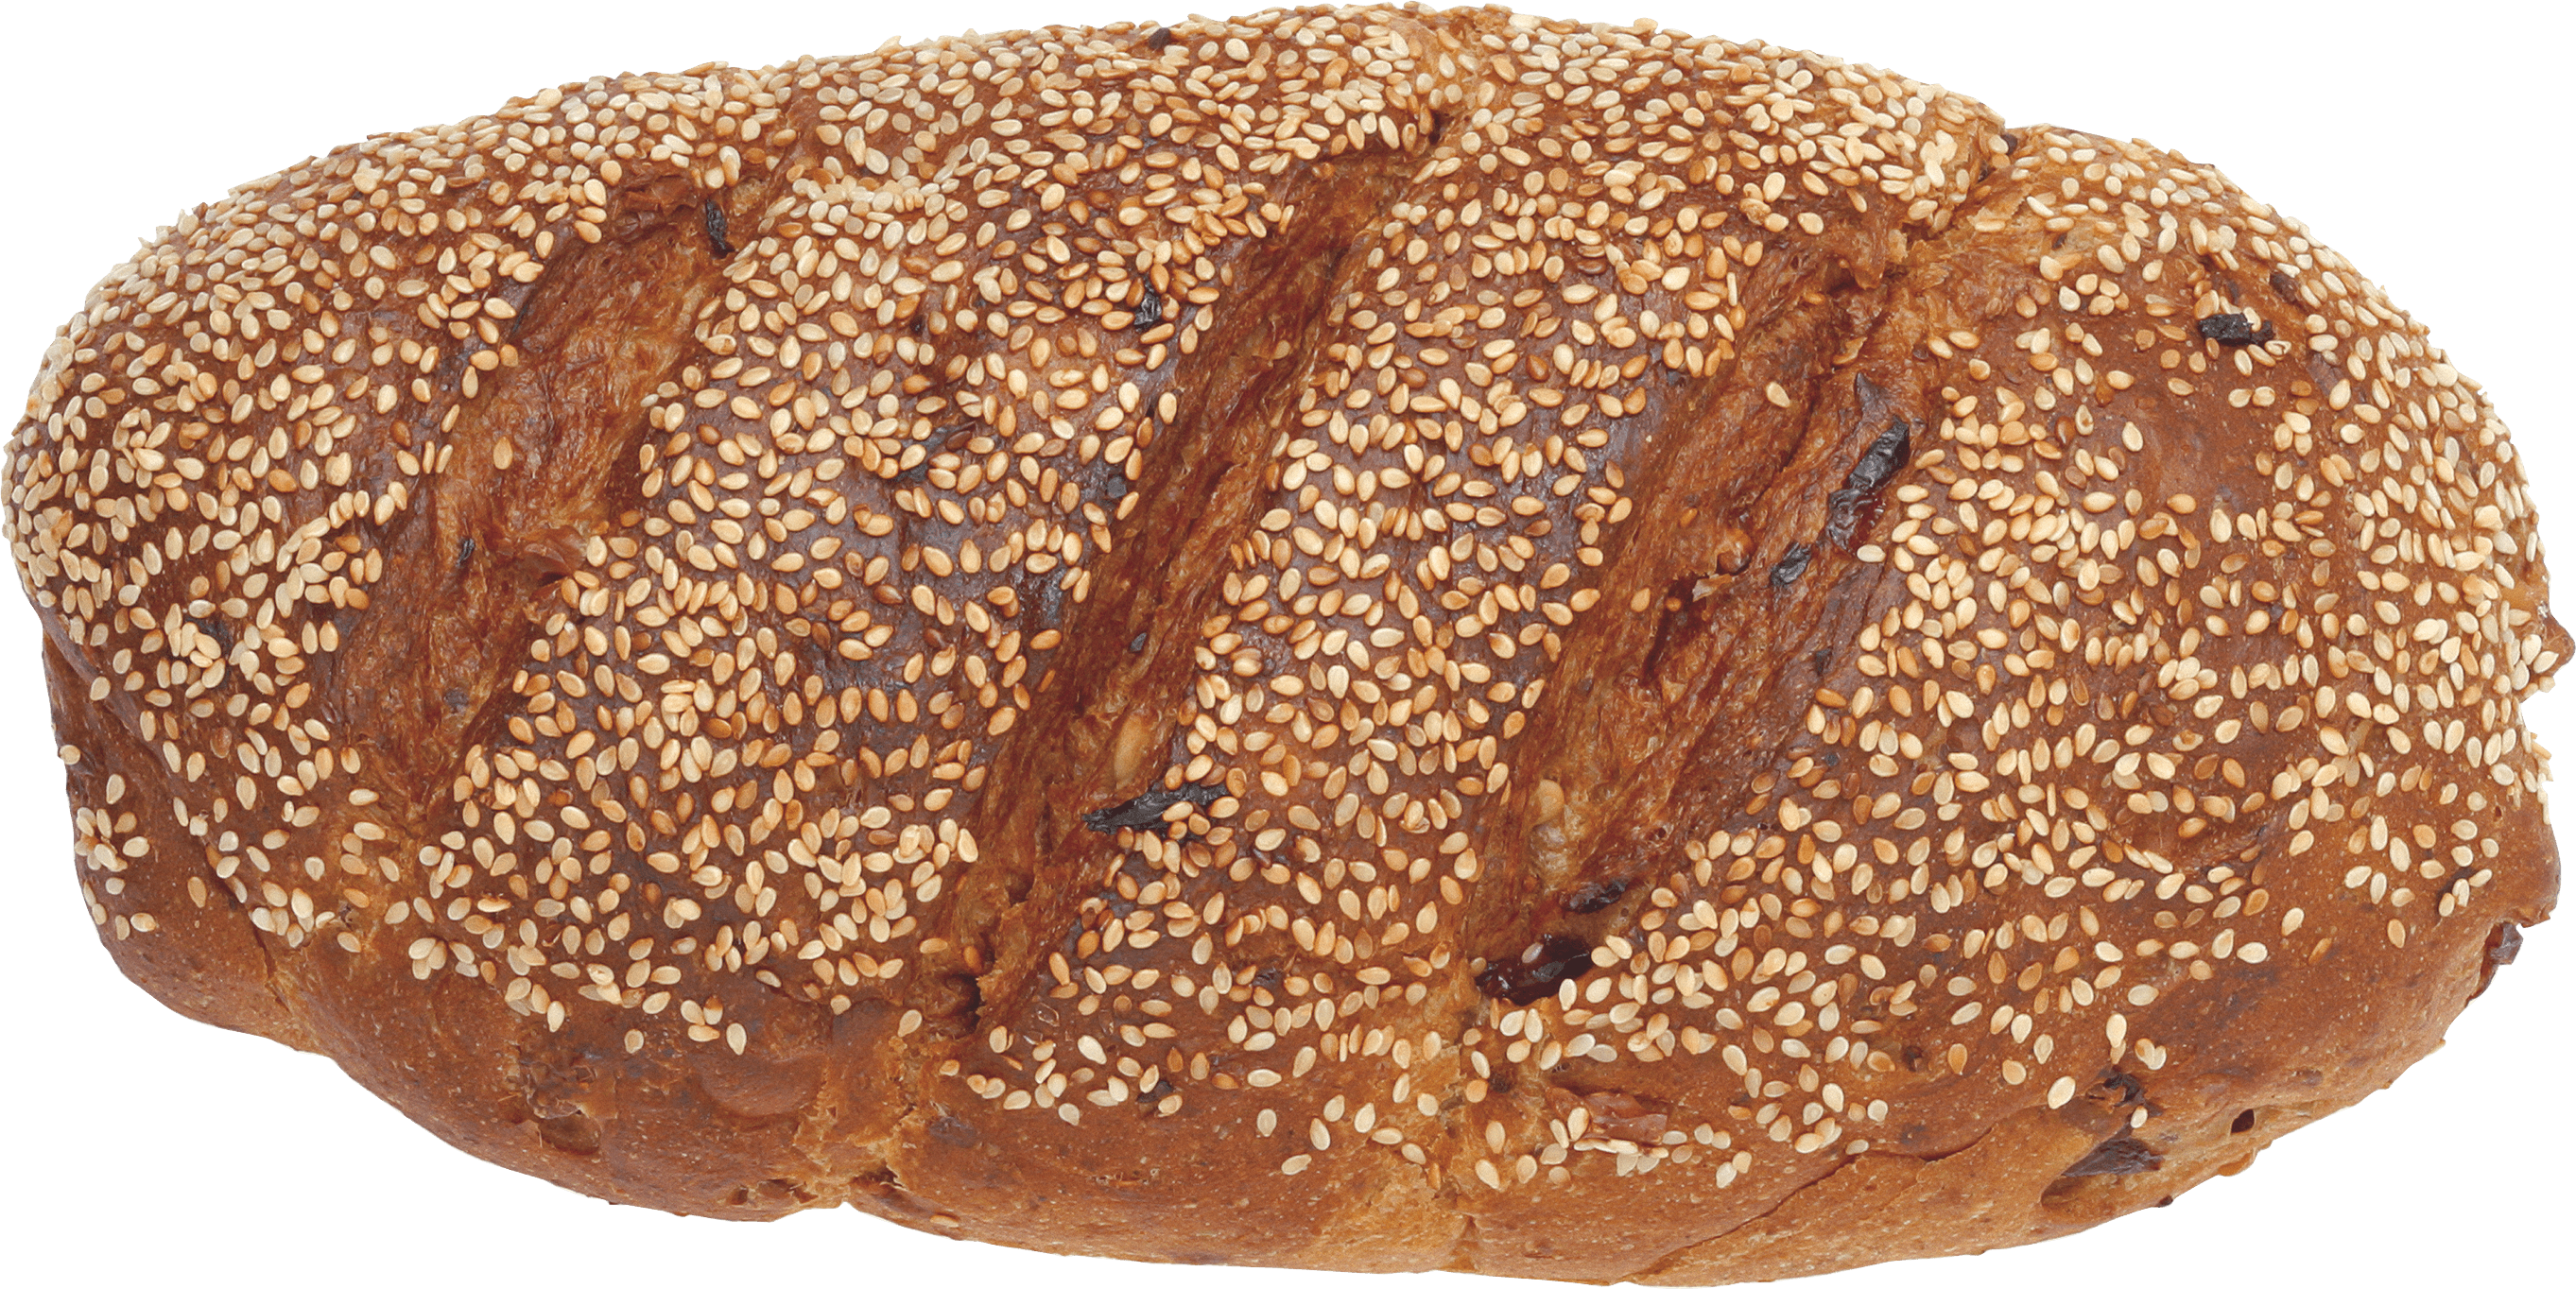 Bread Gray Png Image PNG Image